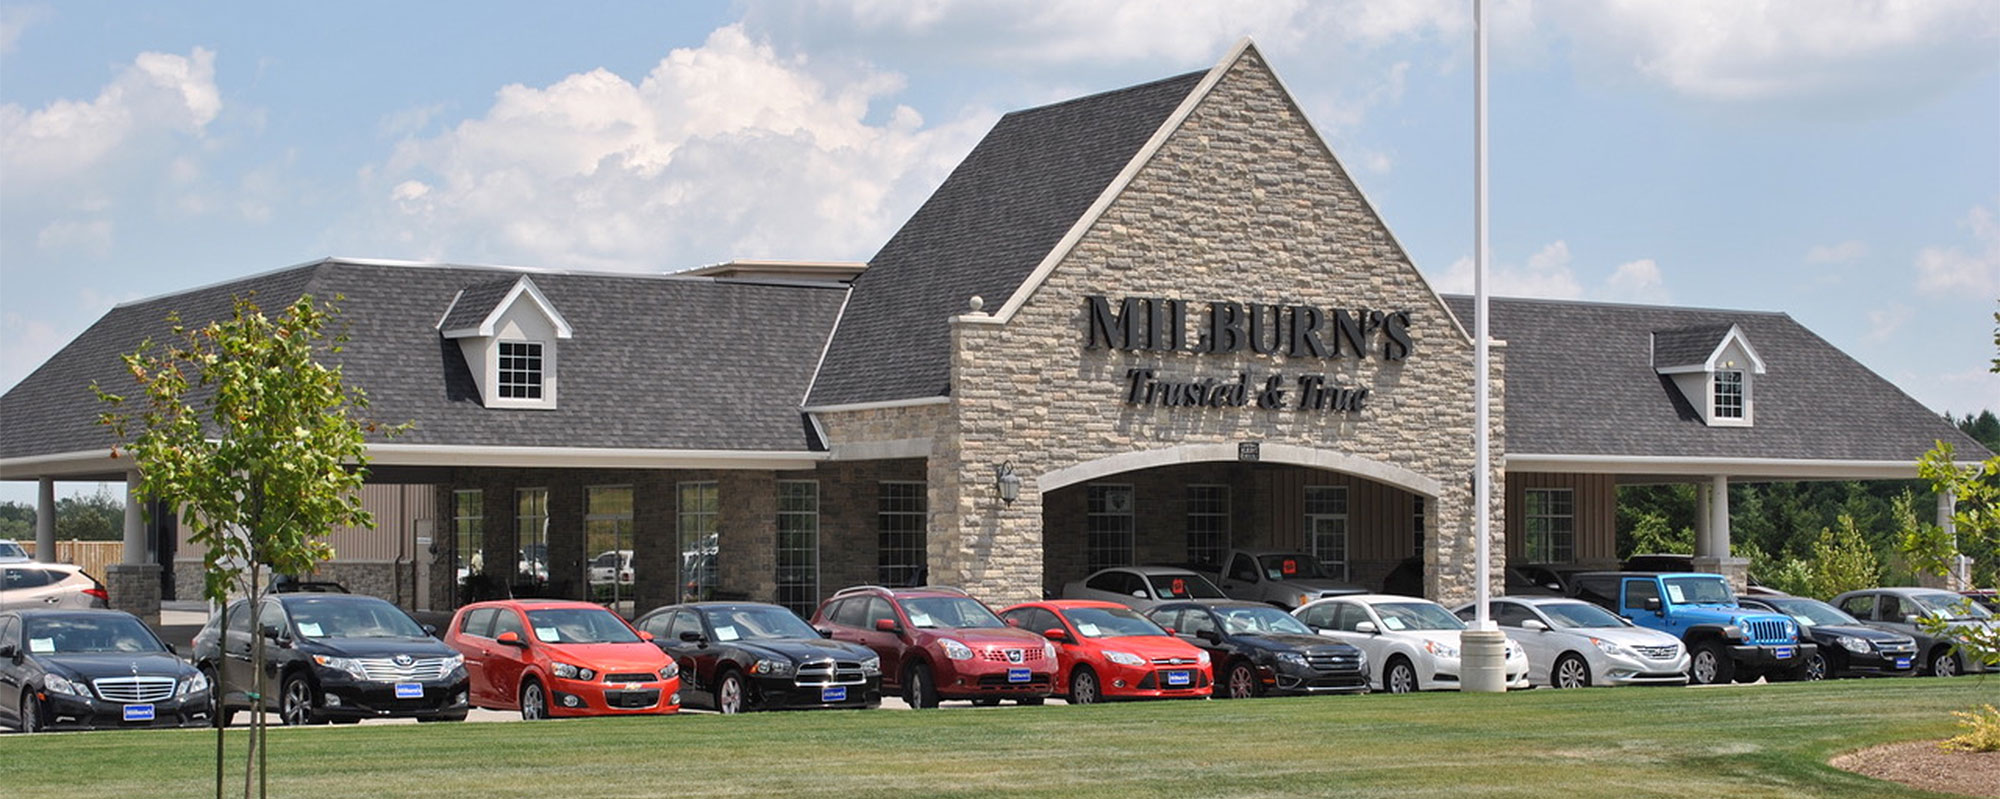 Guelph Auto Mall >> Guelph Used Car Dealer Used Car Sales Service And Parts